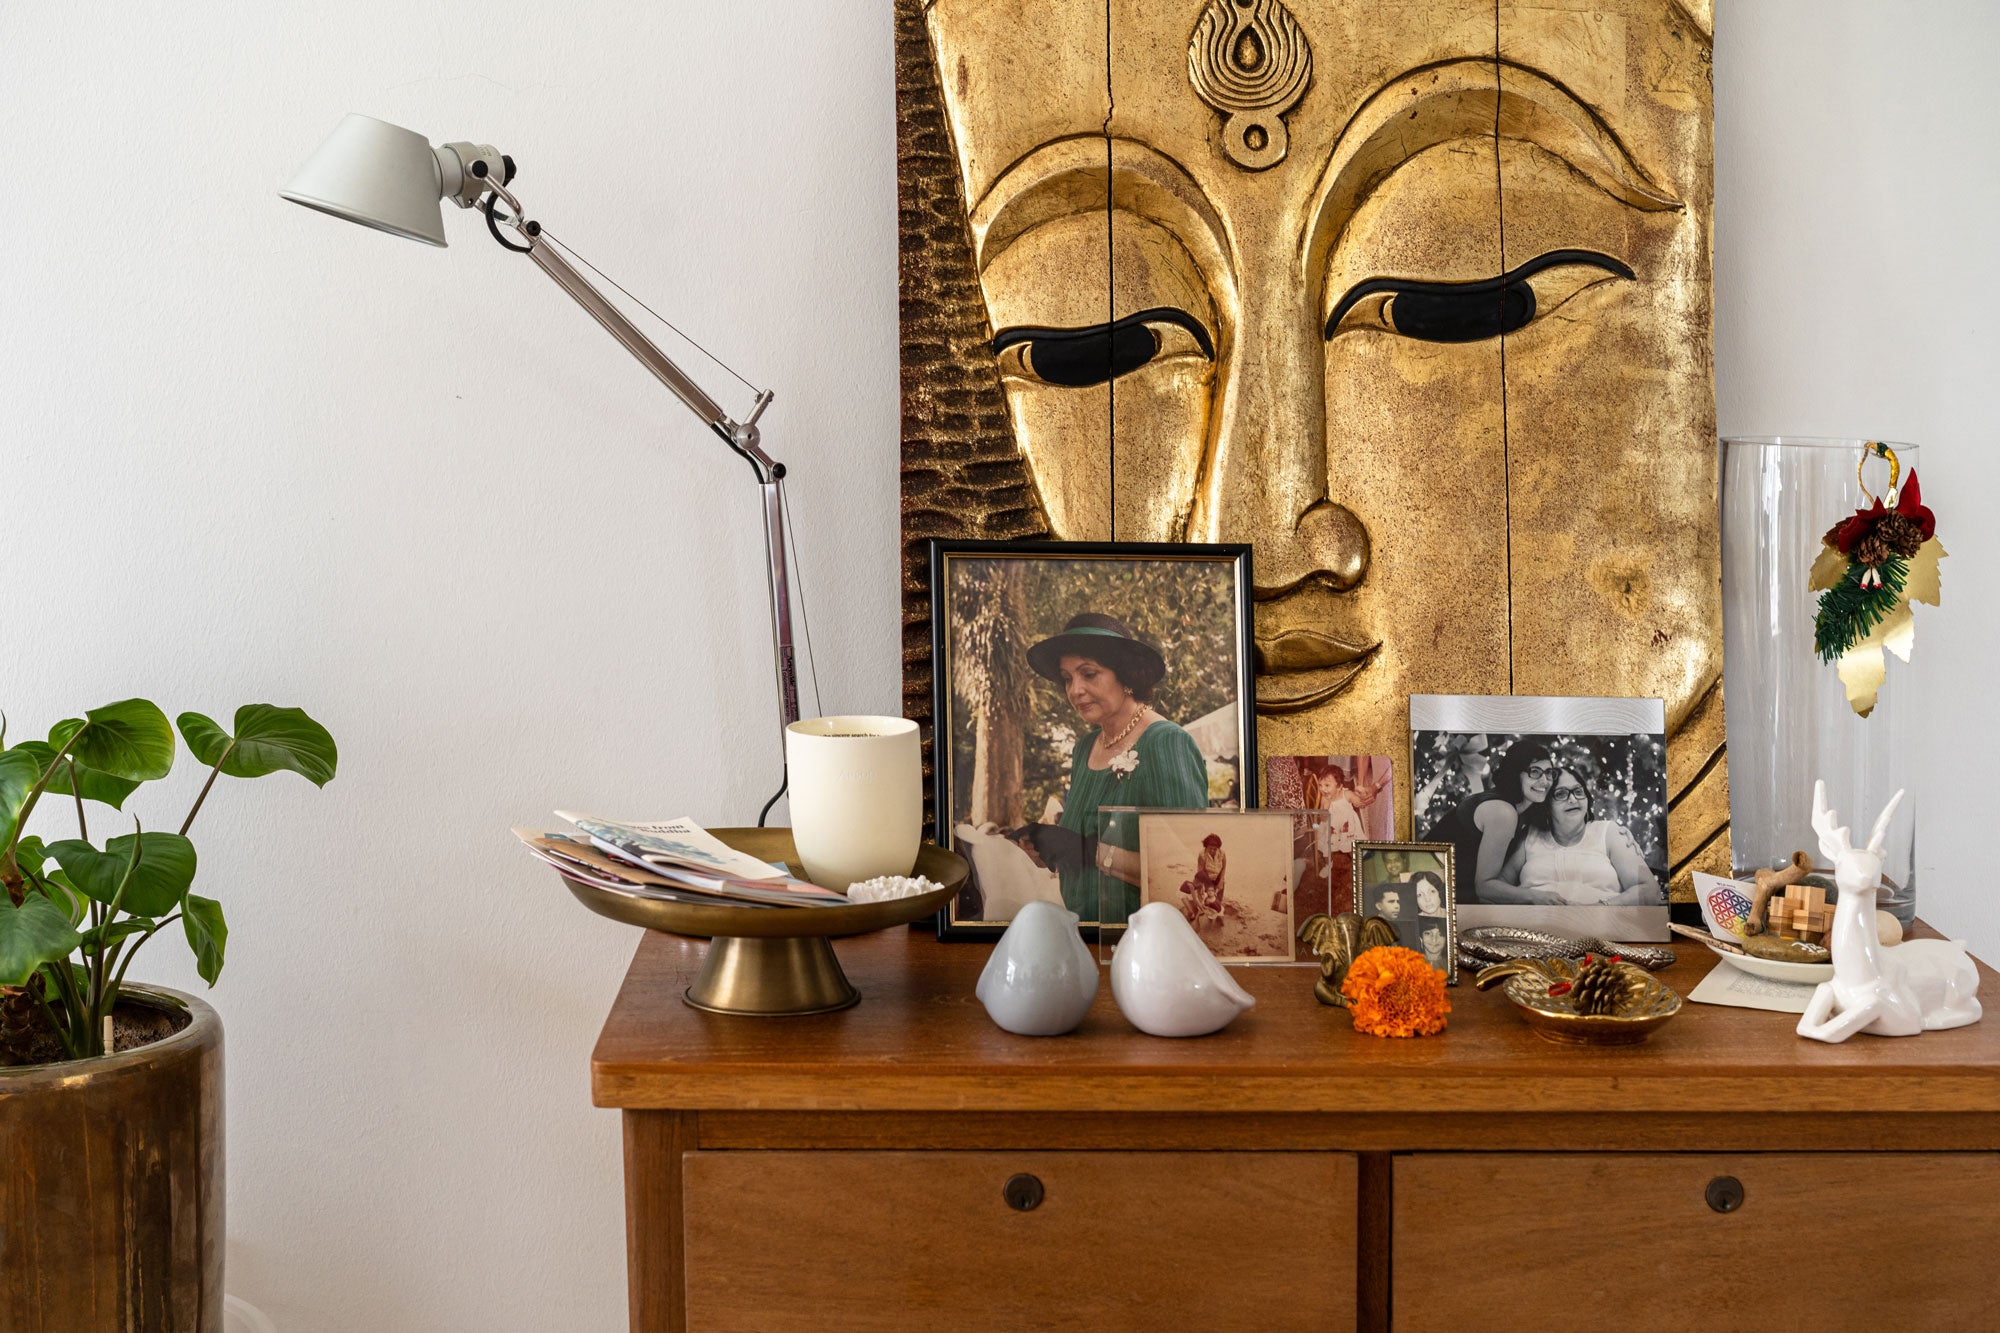 family alter table with buddha image